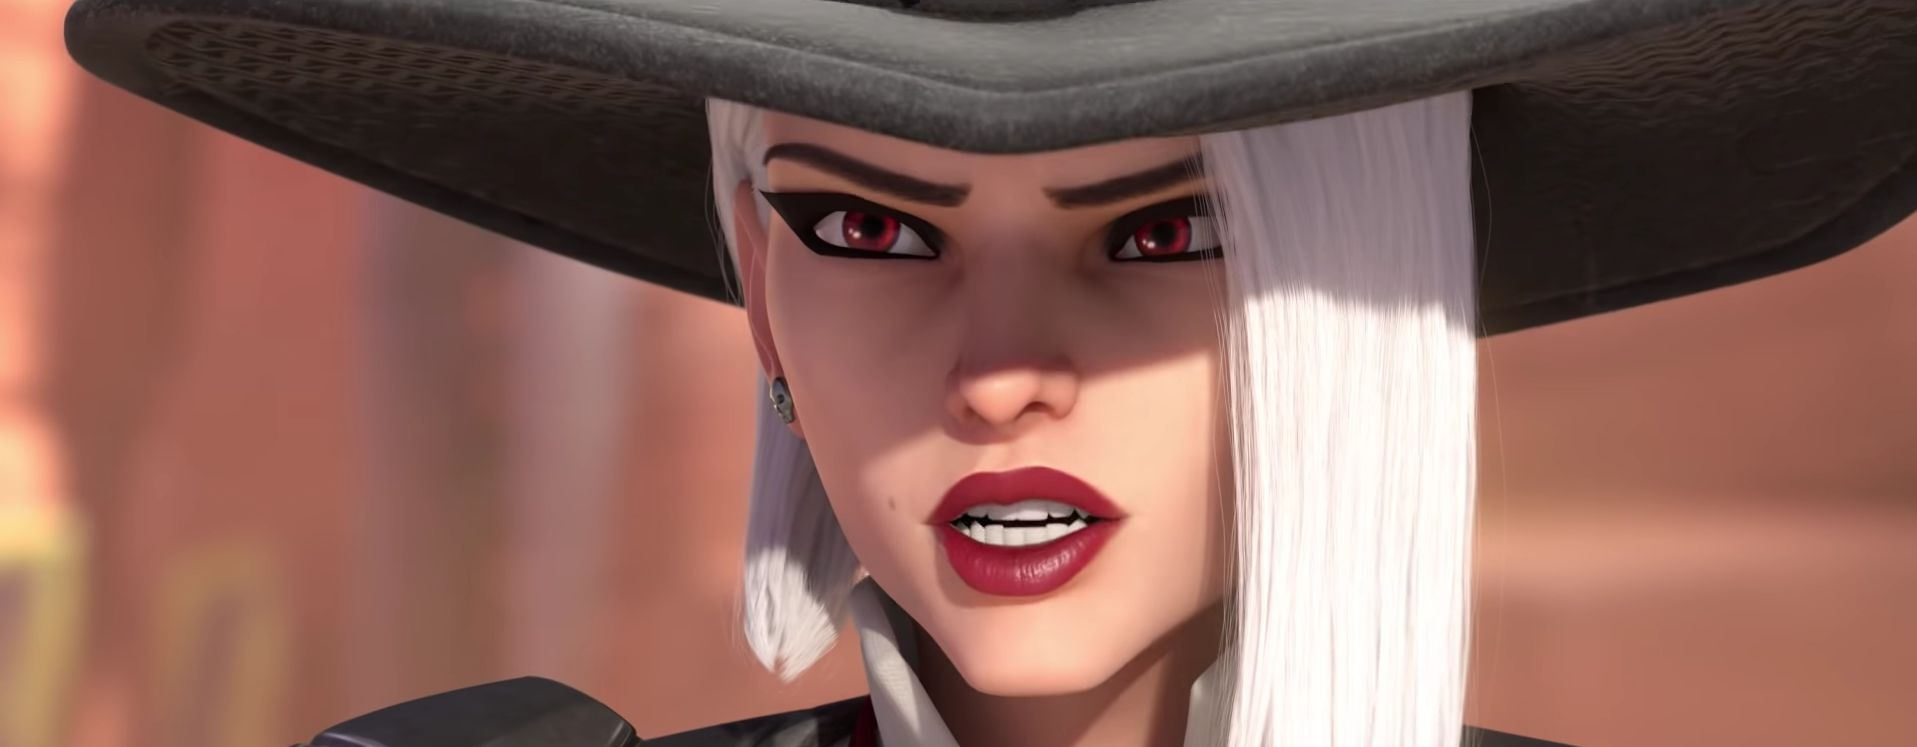 Overwatch Reunion Ashe Clsoeup Titel